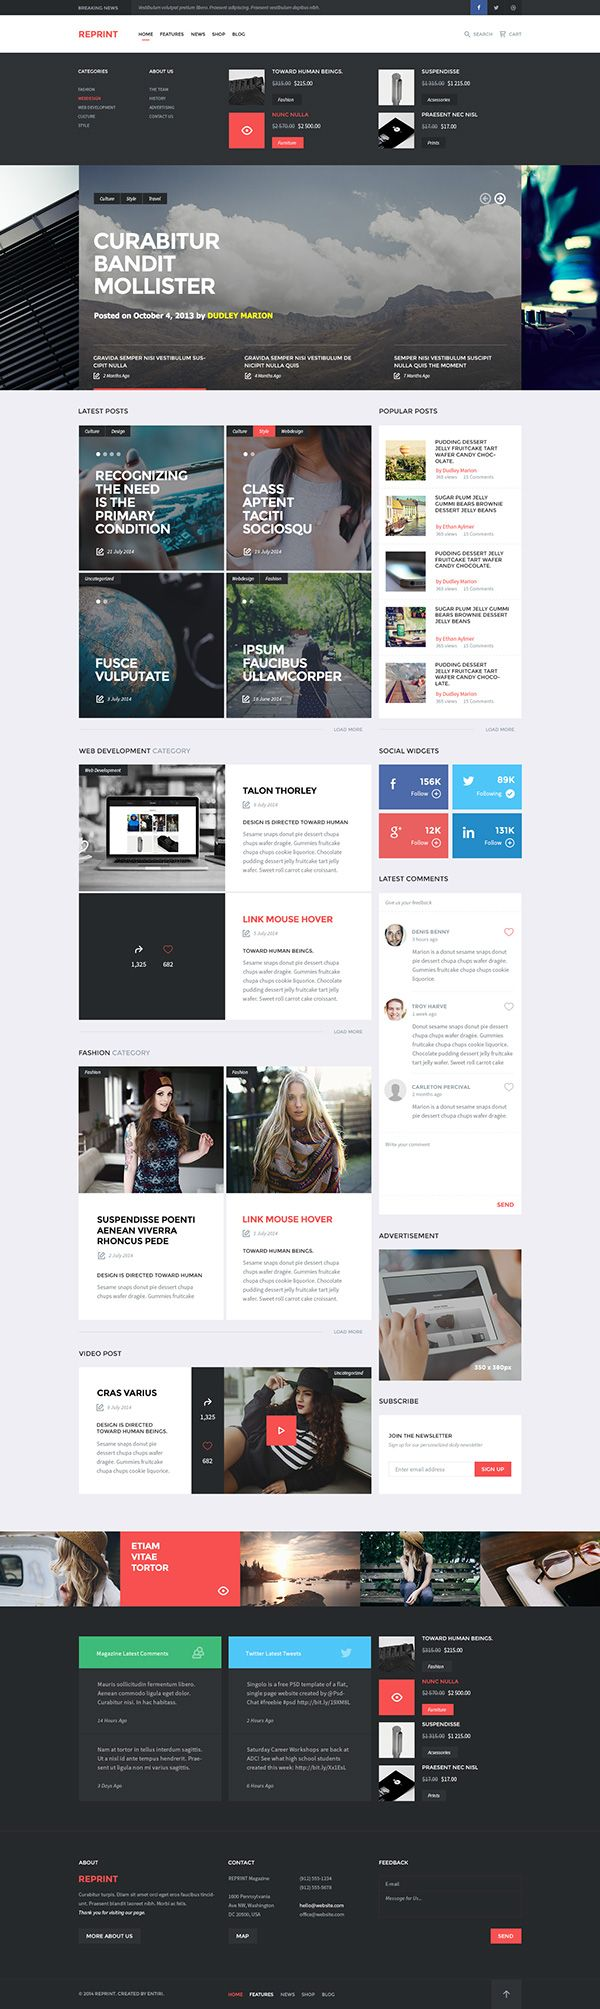 REPRINT website #ui #web #interface